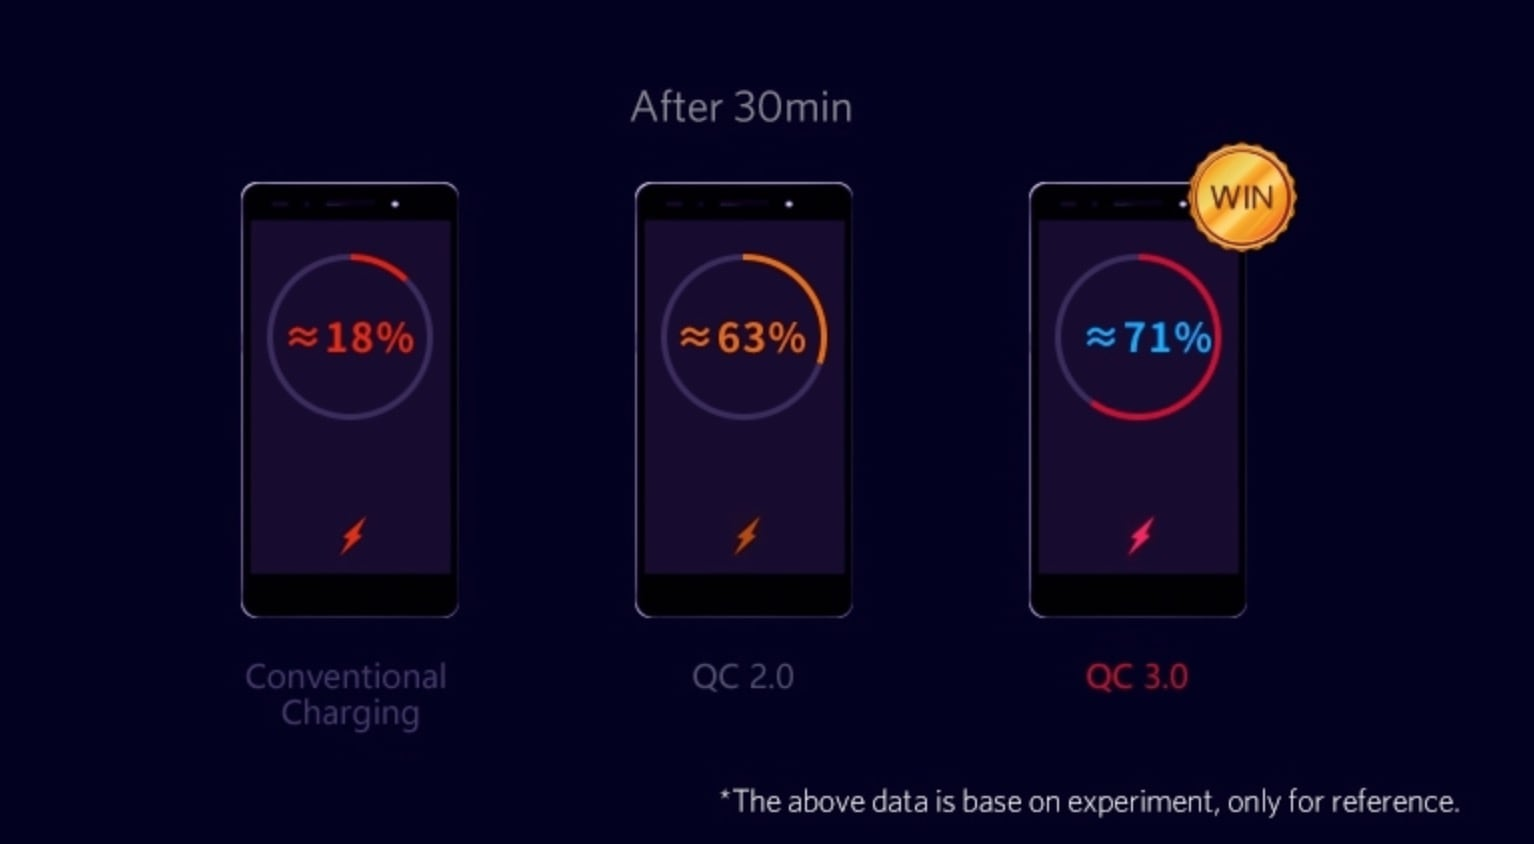 Quick Charge 3.0 4x Faster